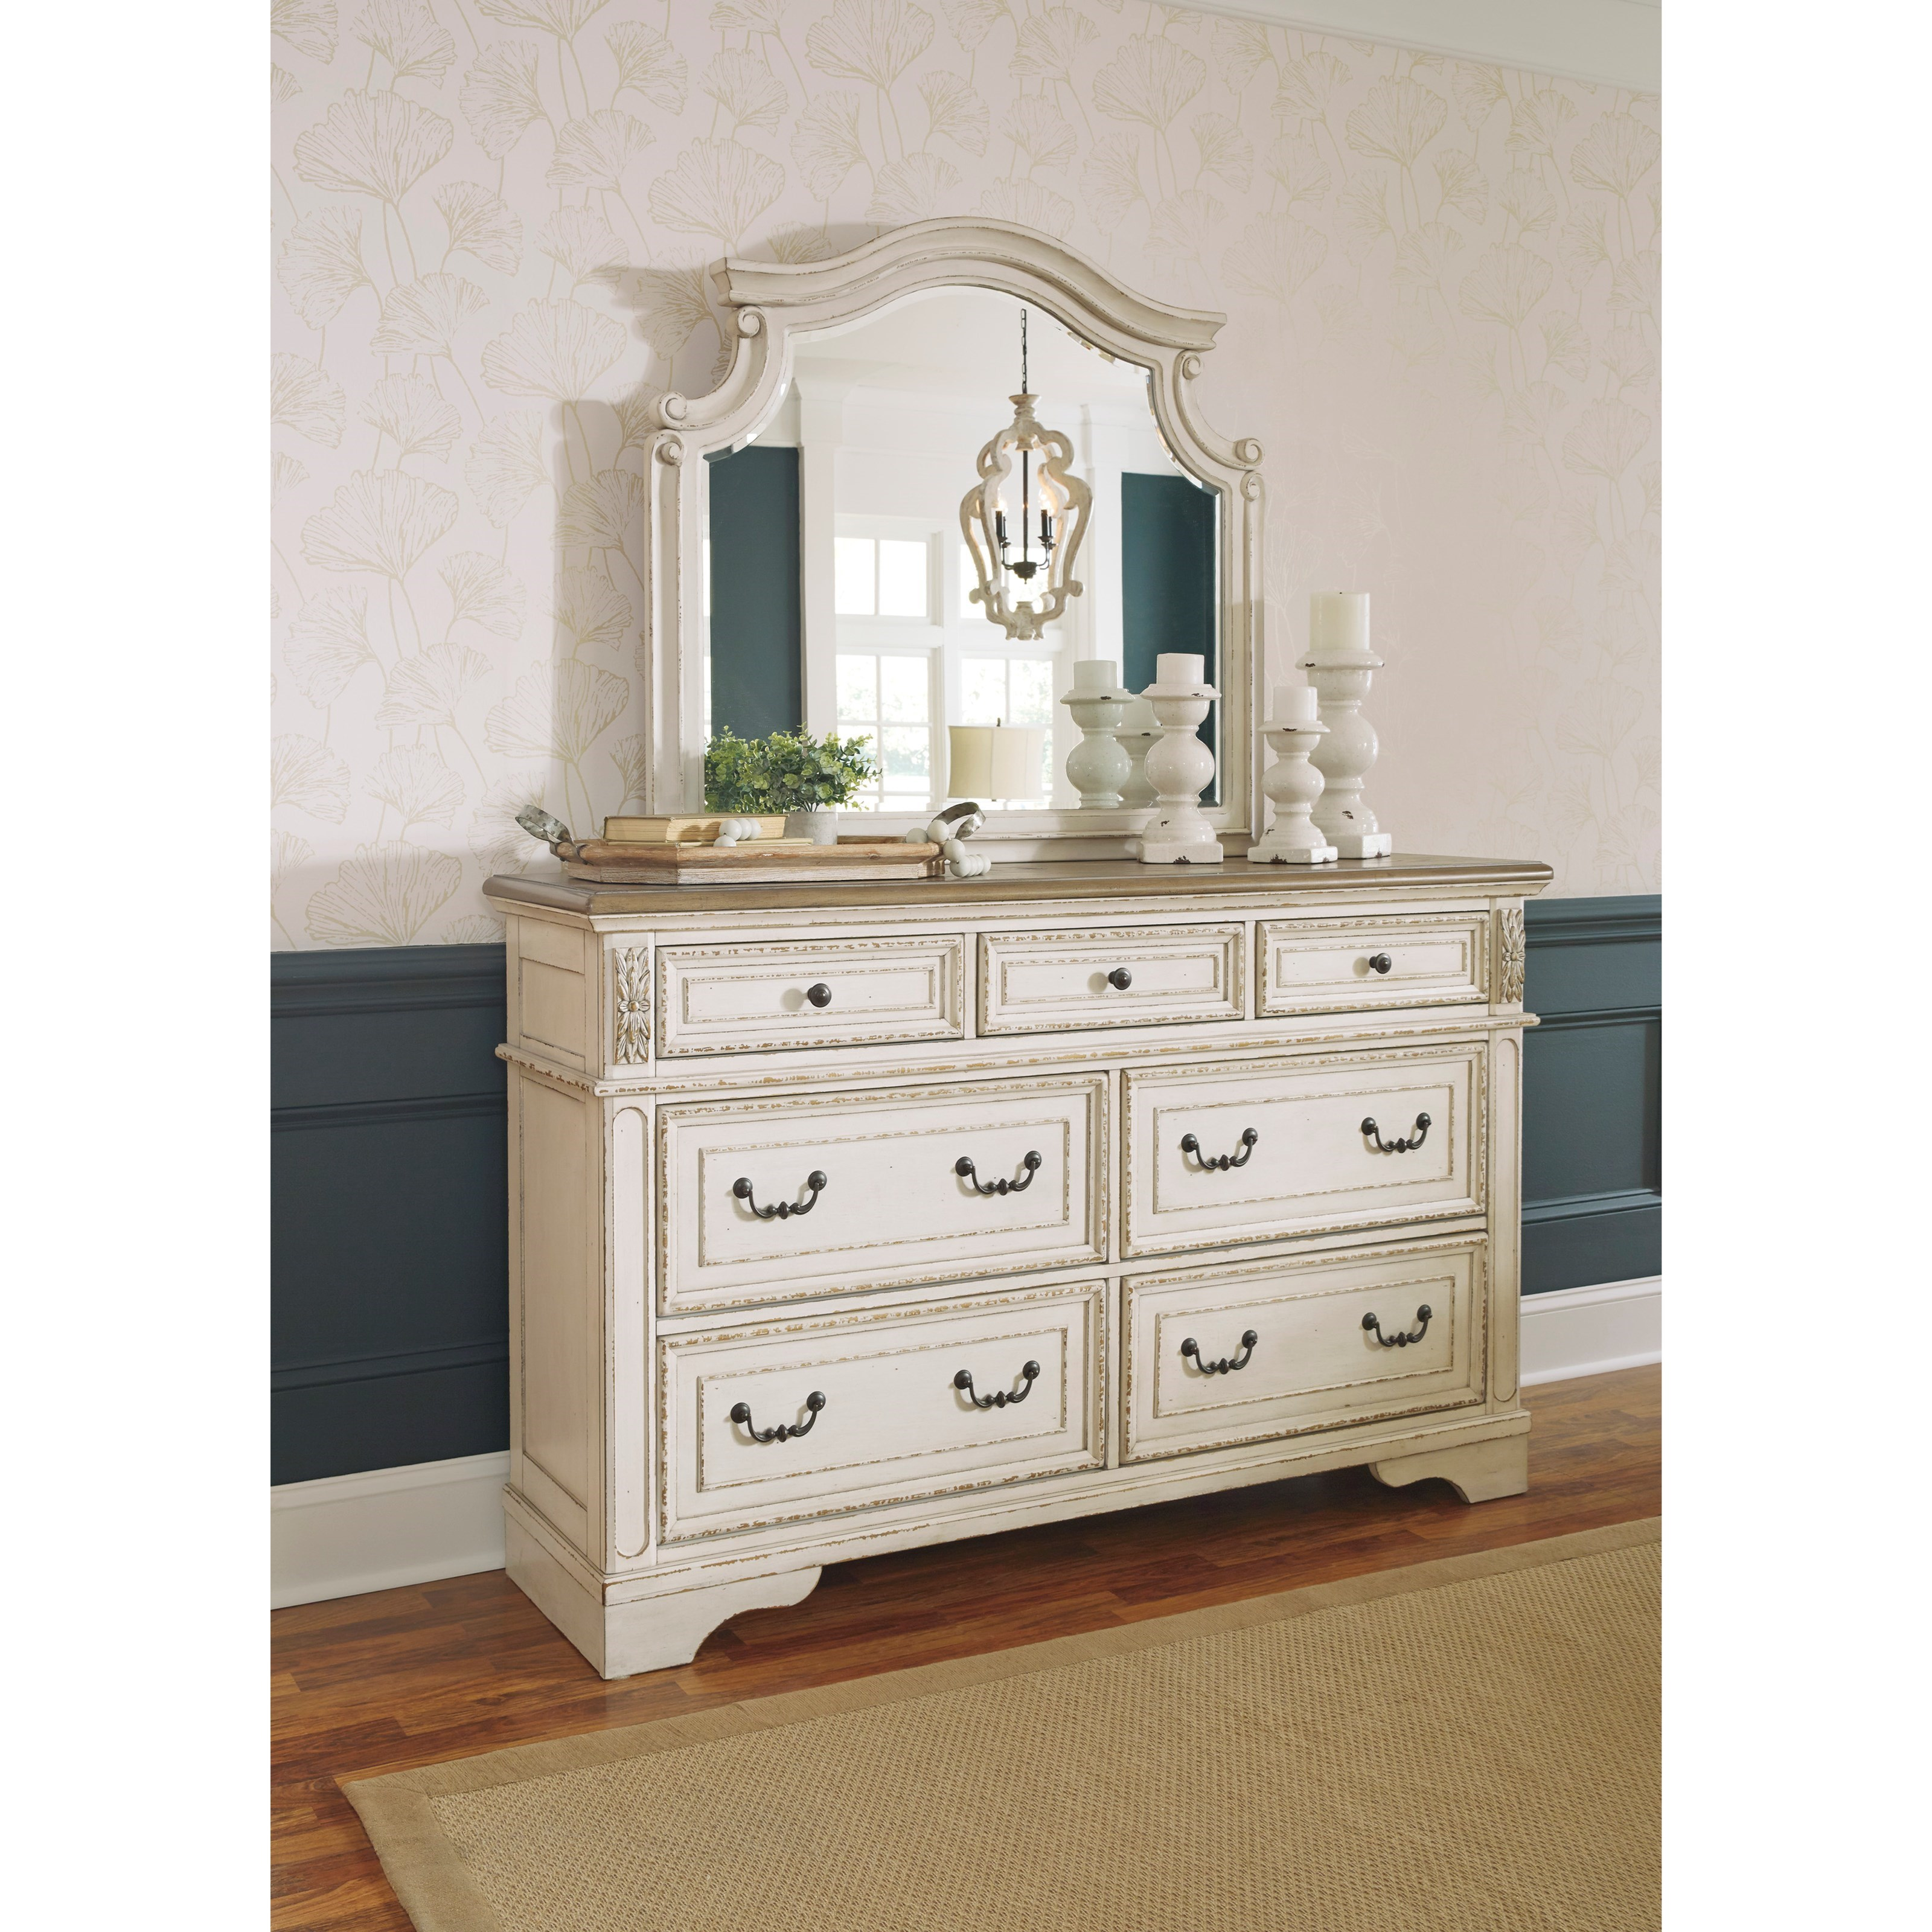 Realyn Dresser and Mirror Set by Signature Design by Ashley at Darvin Furniture